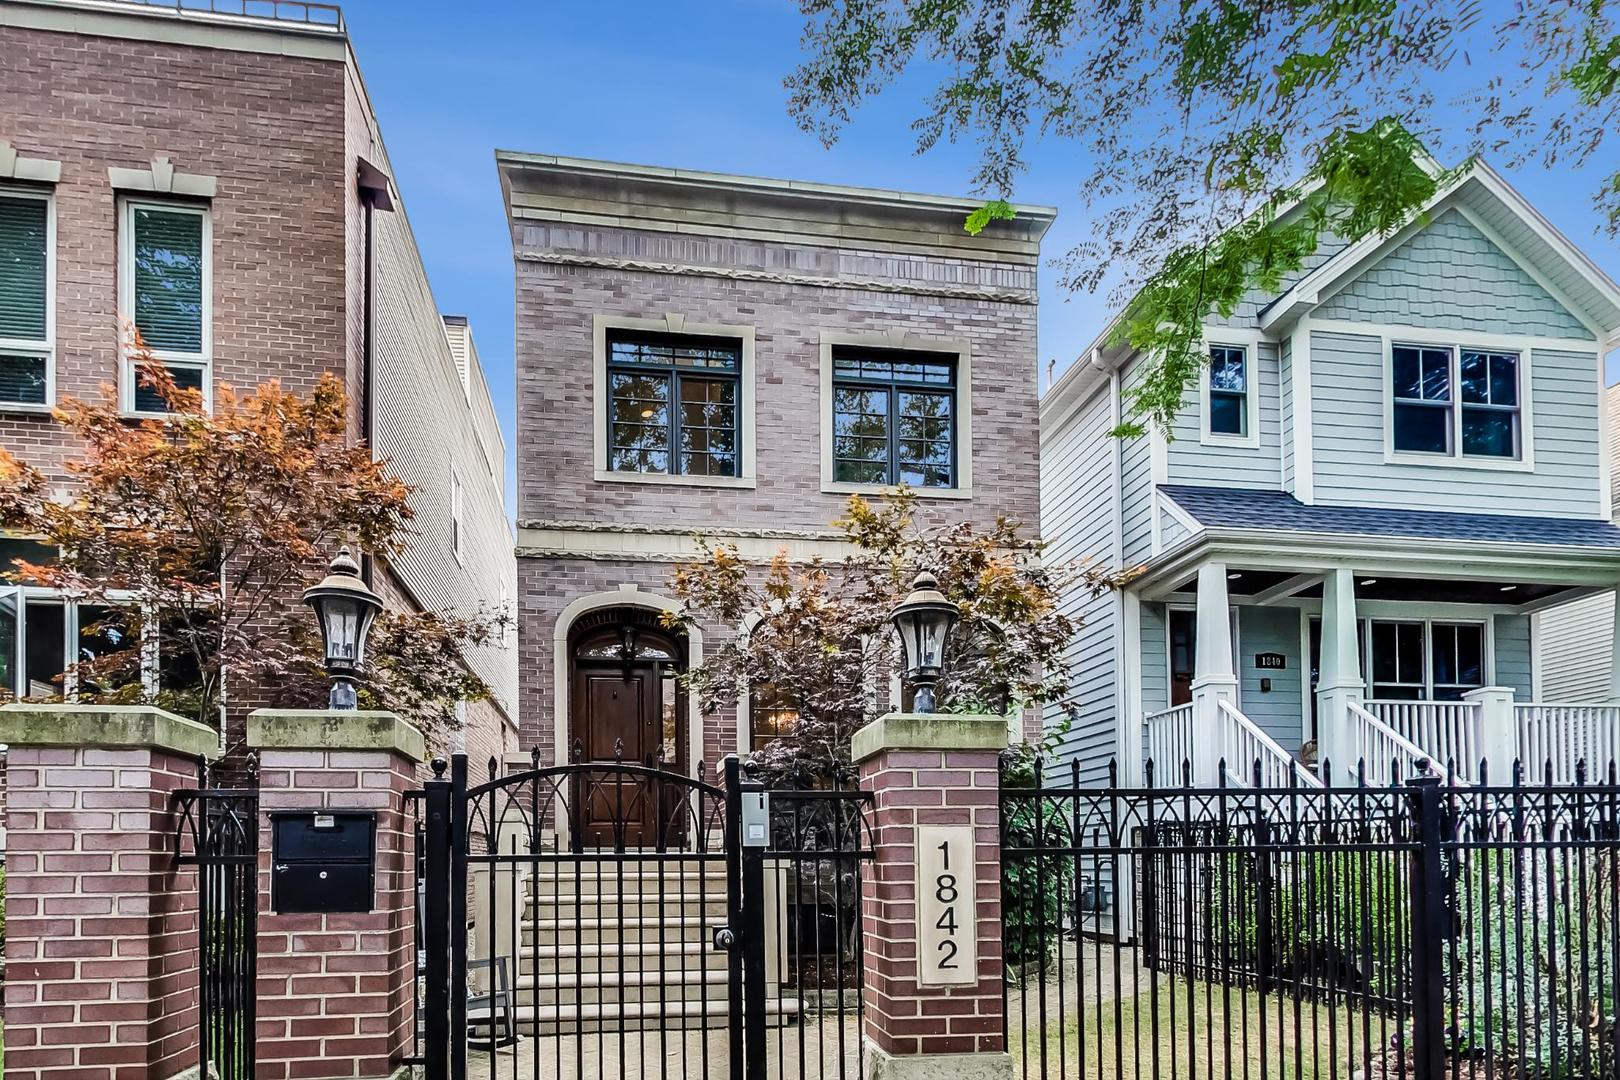 Roscoe Village luxury home on a quiet tree-lined street in an exclusive enclave. Stately limestone e